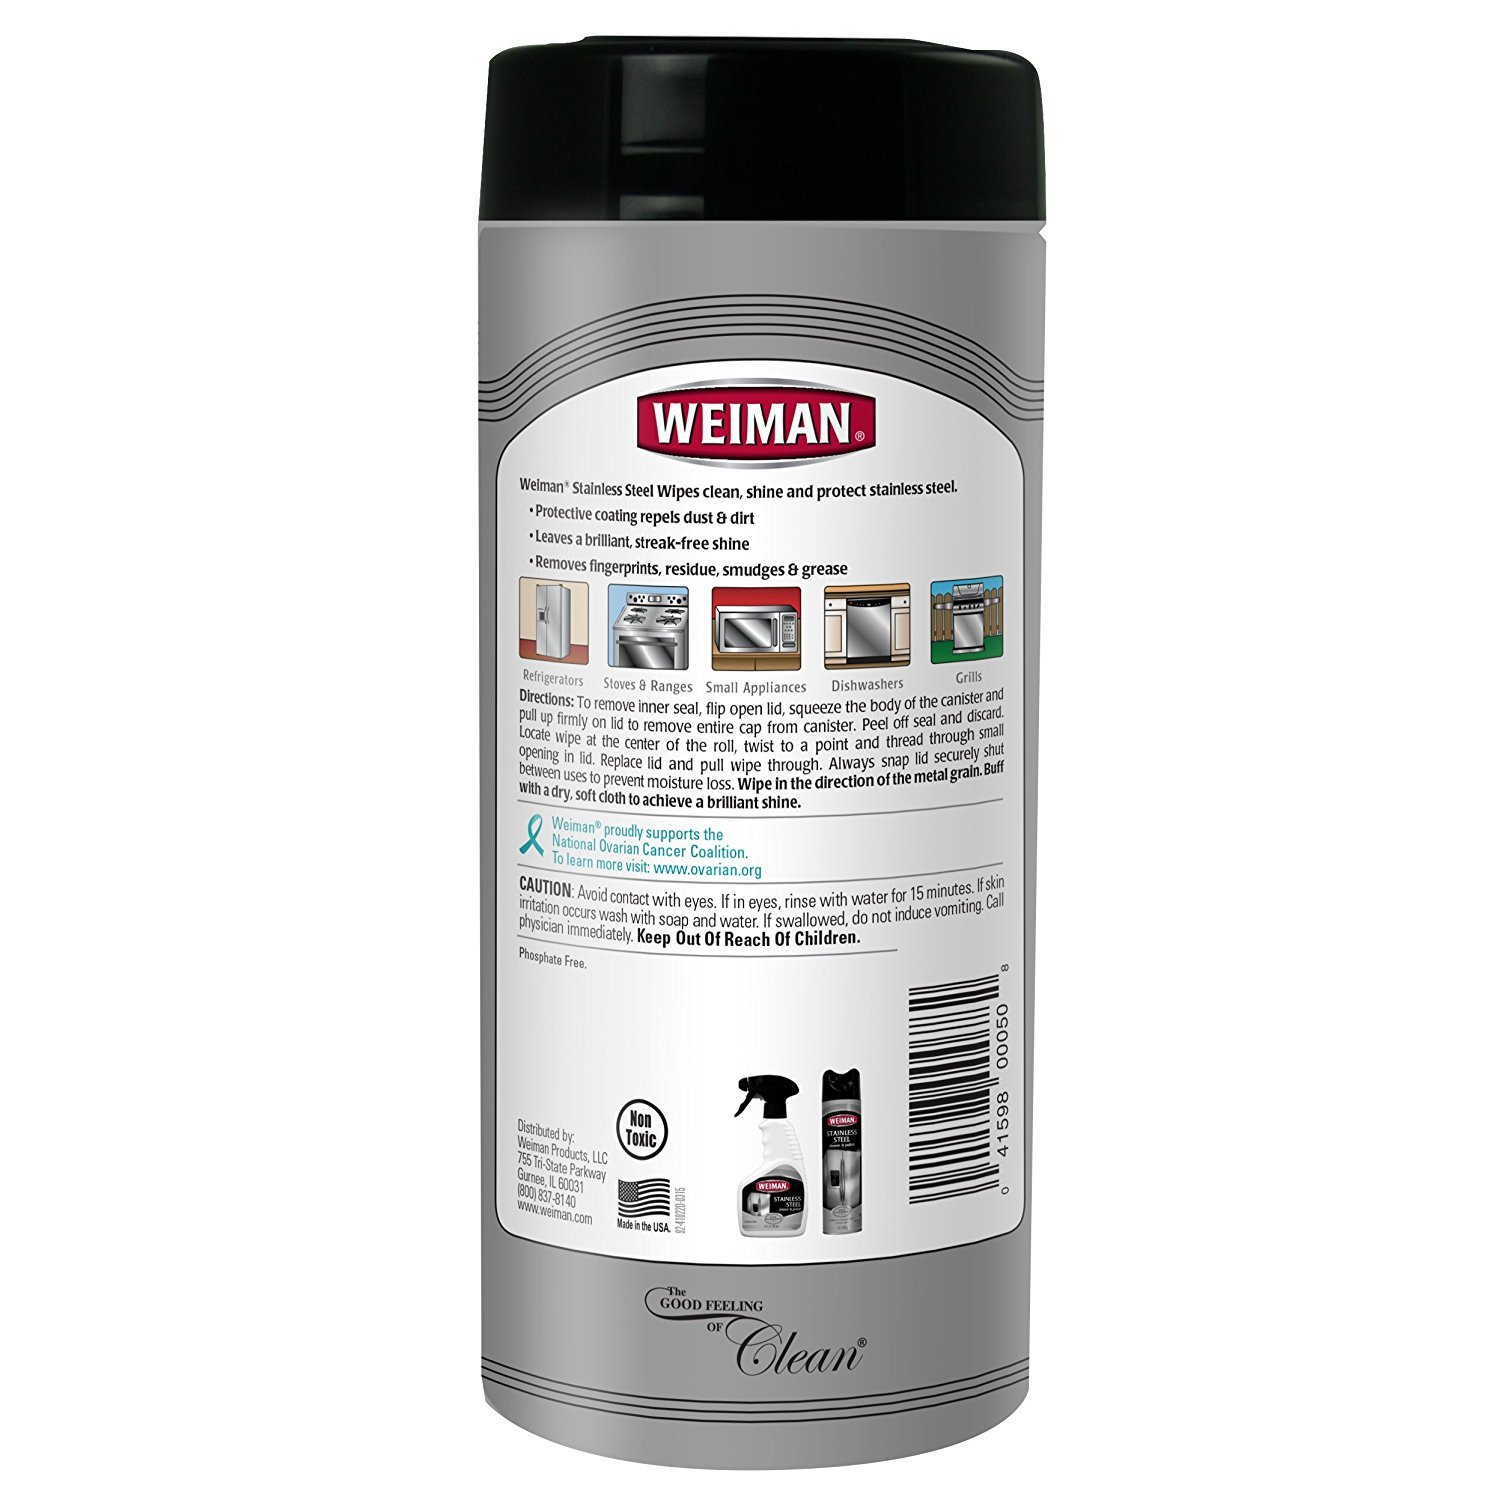 Amazoncom Weiman Stainless Steel Wipes And Granite Wipes (30 Count